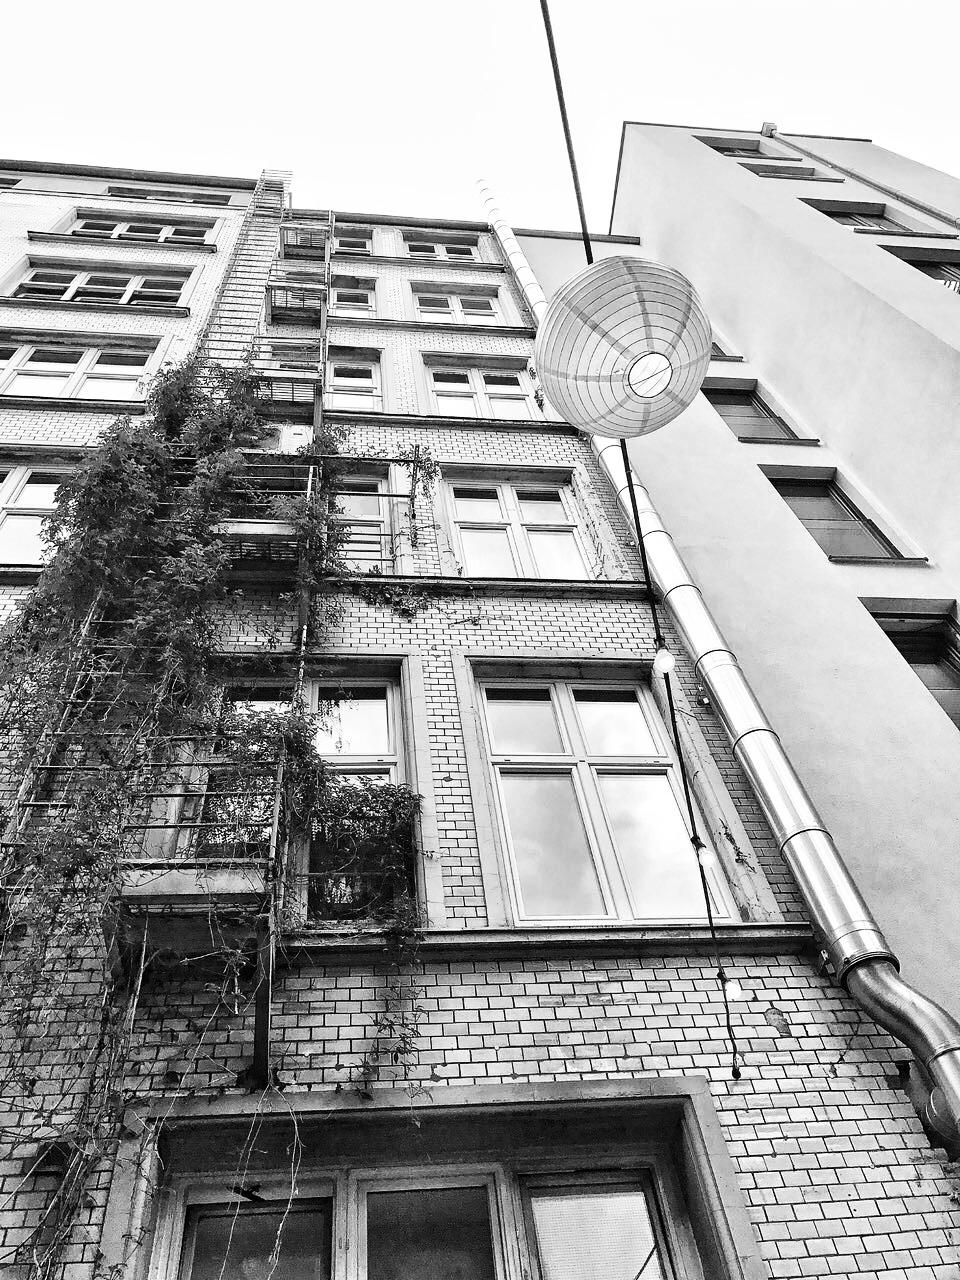 Unterwegs in den strassen von hamburg monochrom backstein haus lampion urbanjungle fassade  1f1f338f c64b 4be2 8a3c 8193f3ecec40